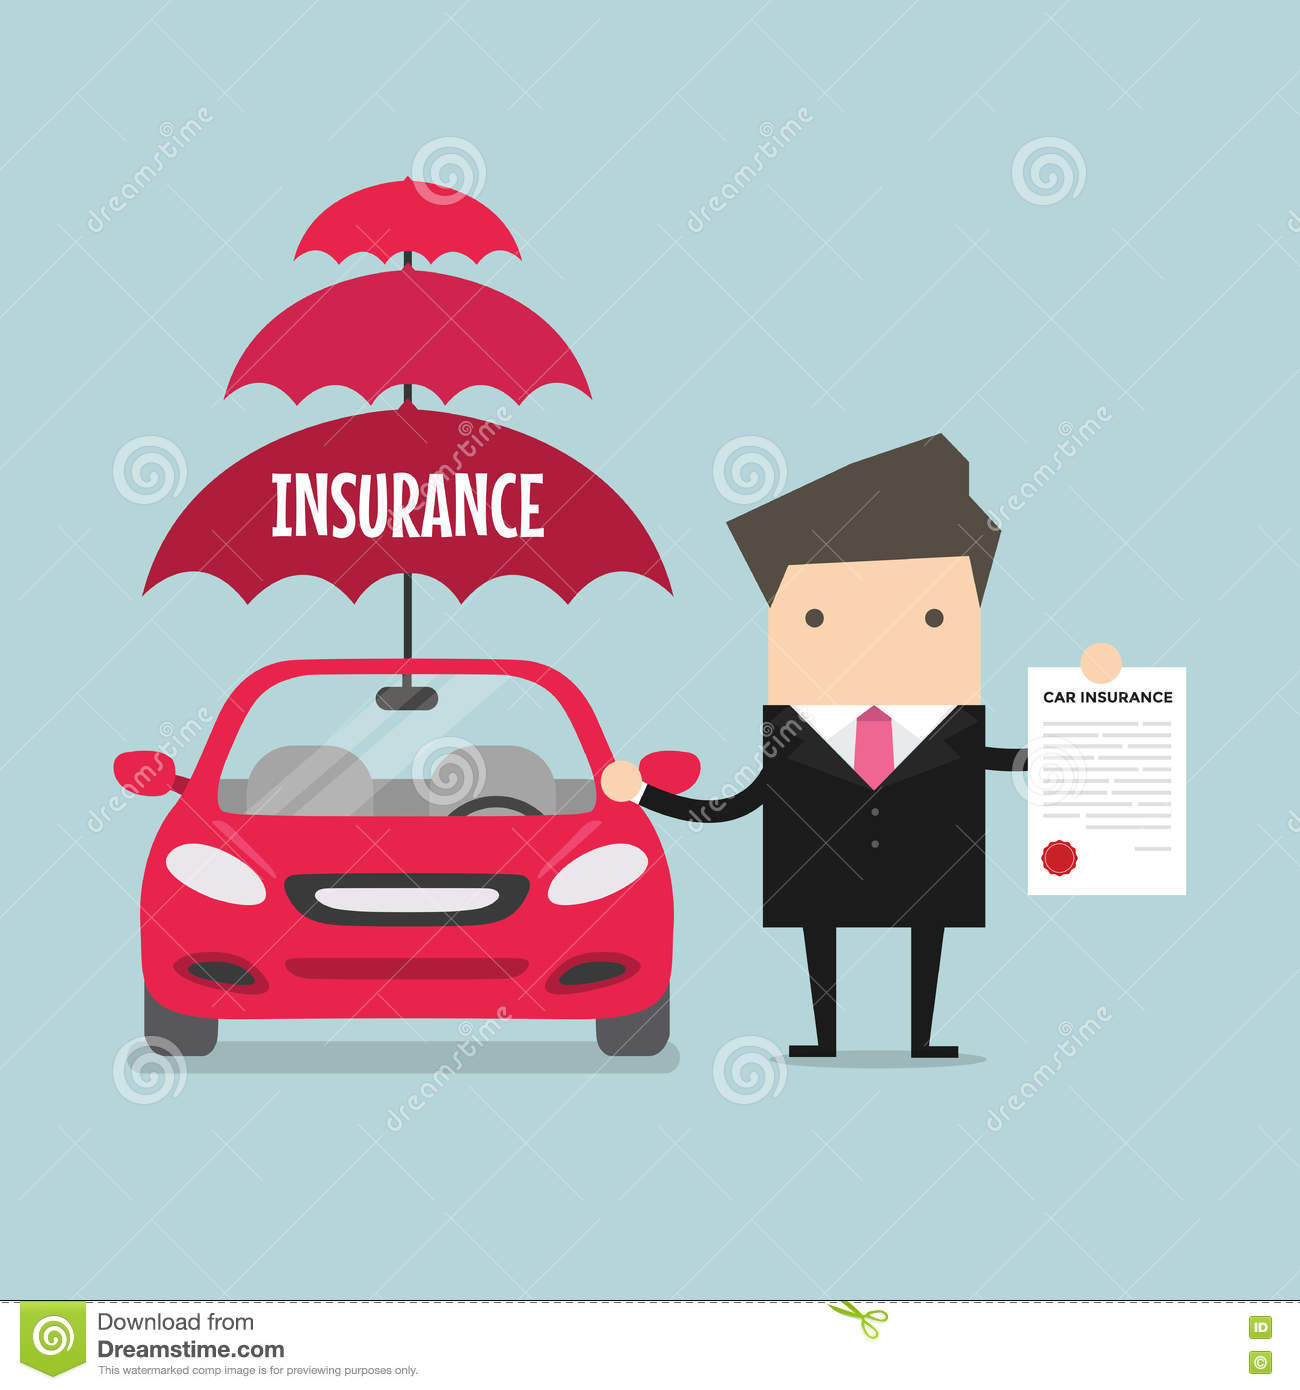 Image Result For Car Insurance Stock Photos Royalty Free Car Insurance Images